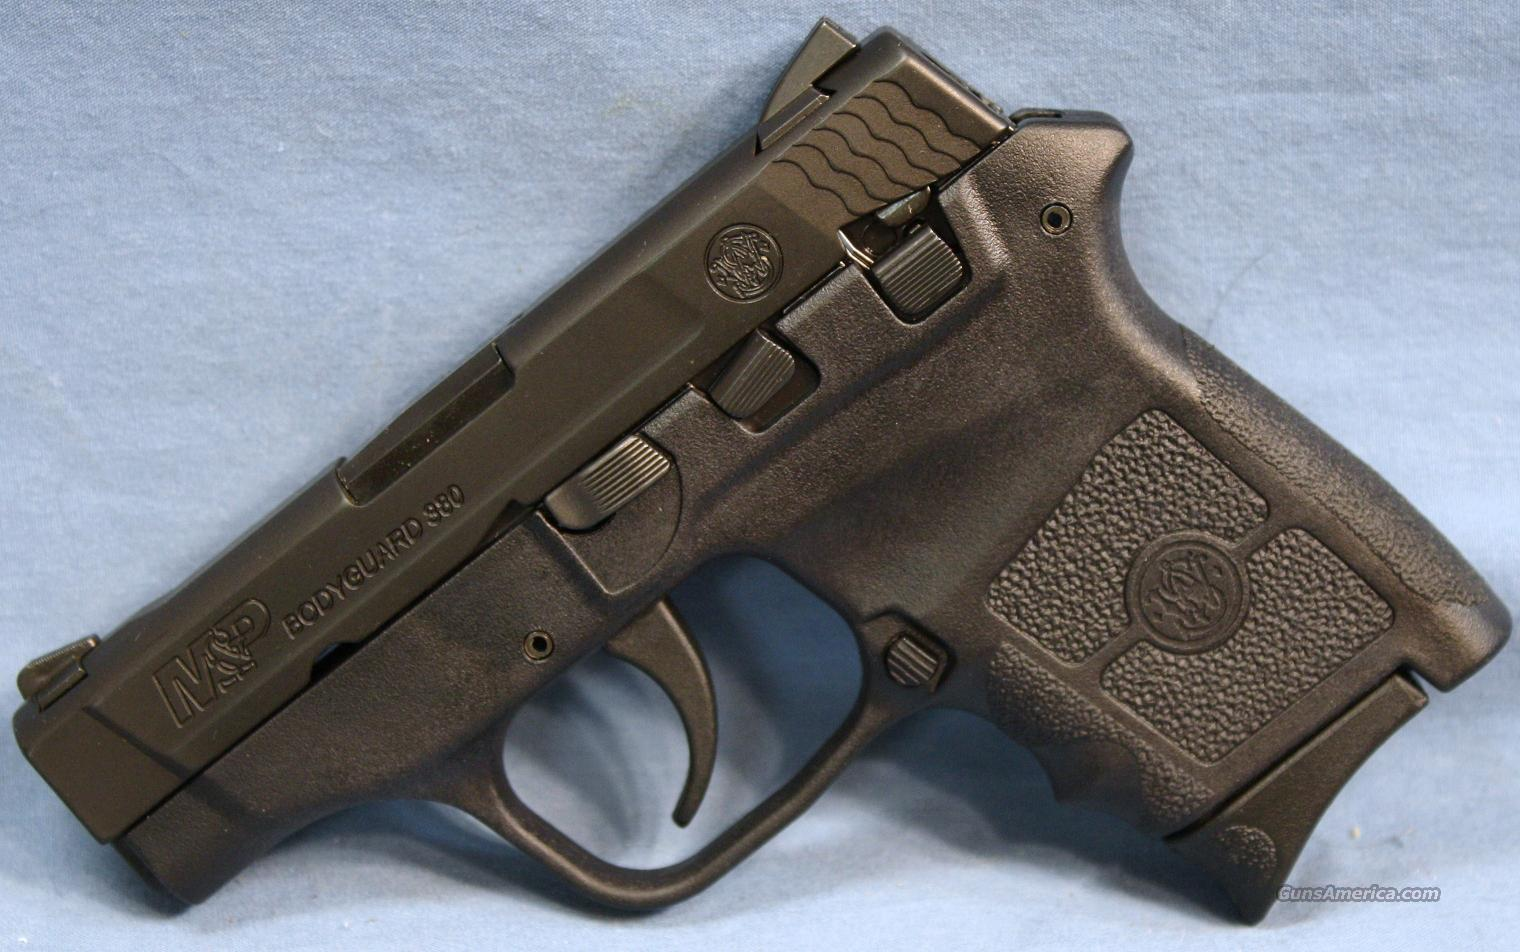 Smith & Wesson Bodyguard Semi-Automatic Pistol, .380 ACP   Guns > Pistols > Smith & Wesson Pistols - Autos > Polymer Frame